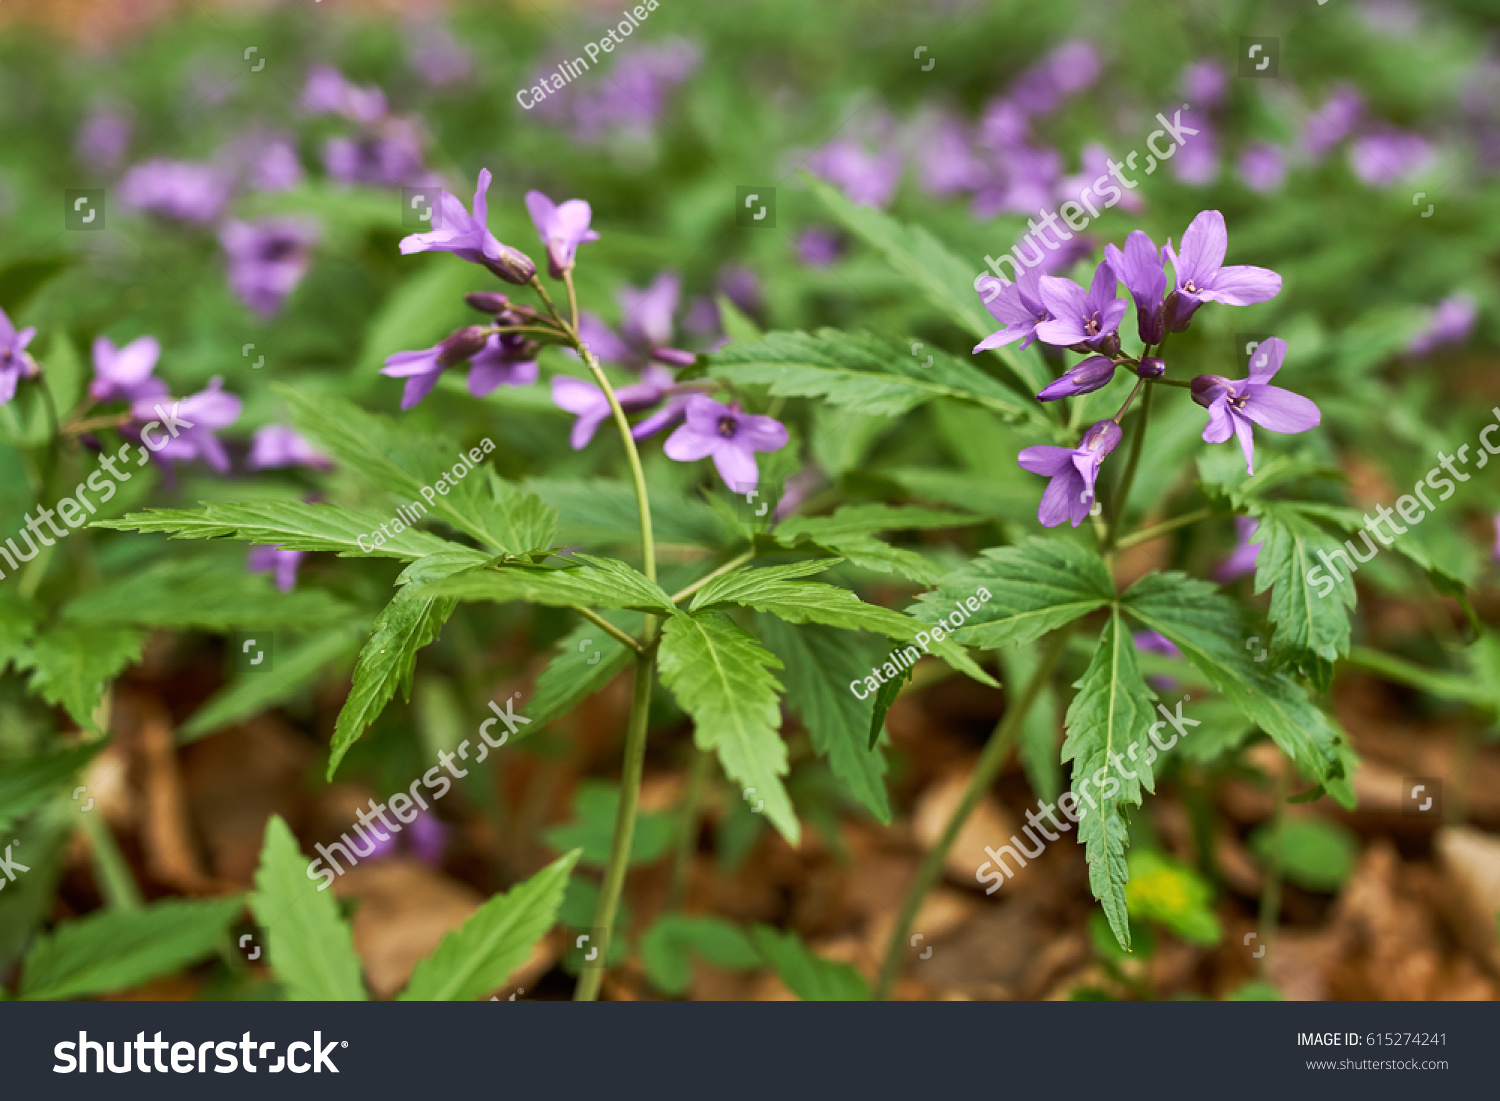 Purple Flowers And Green Leaves Of Fragrant Thai Basil Herb Ez Canvas